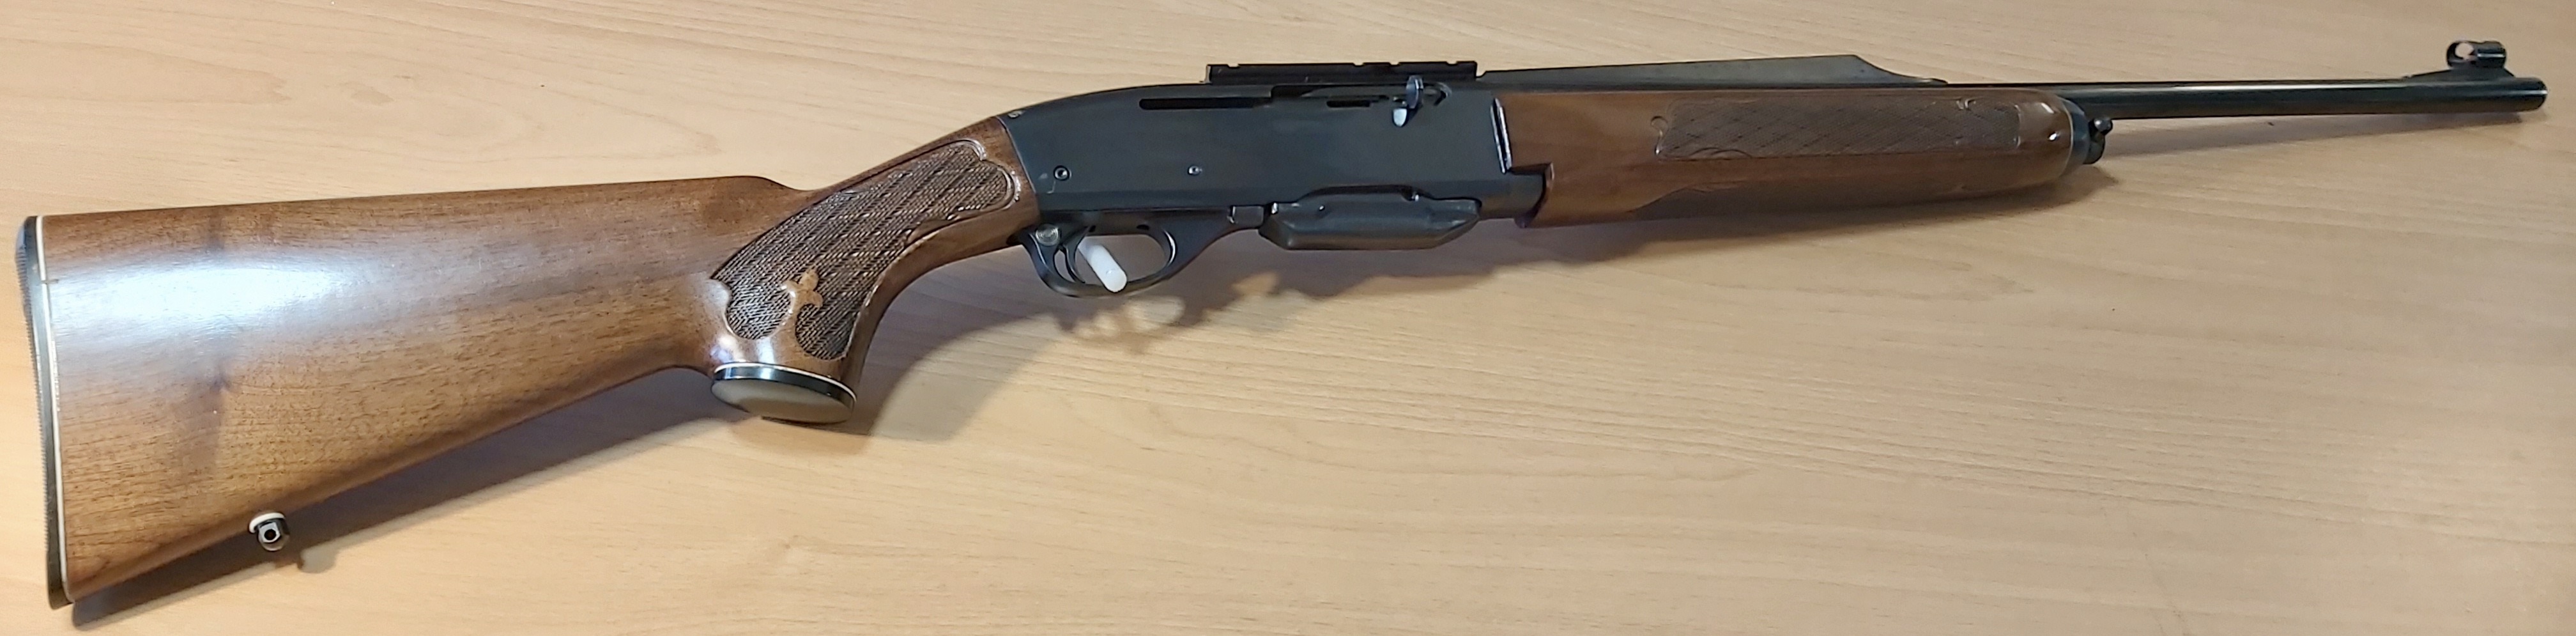 "Remington ""woodsmaster model 742"", cal .280,"